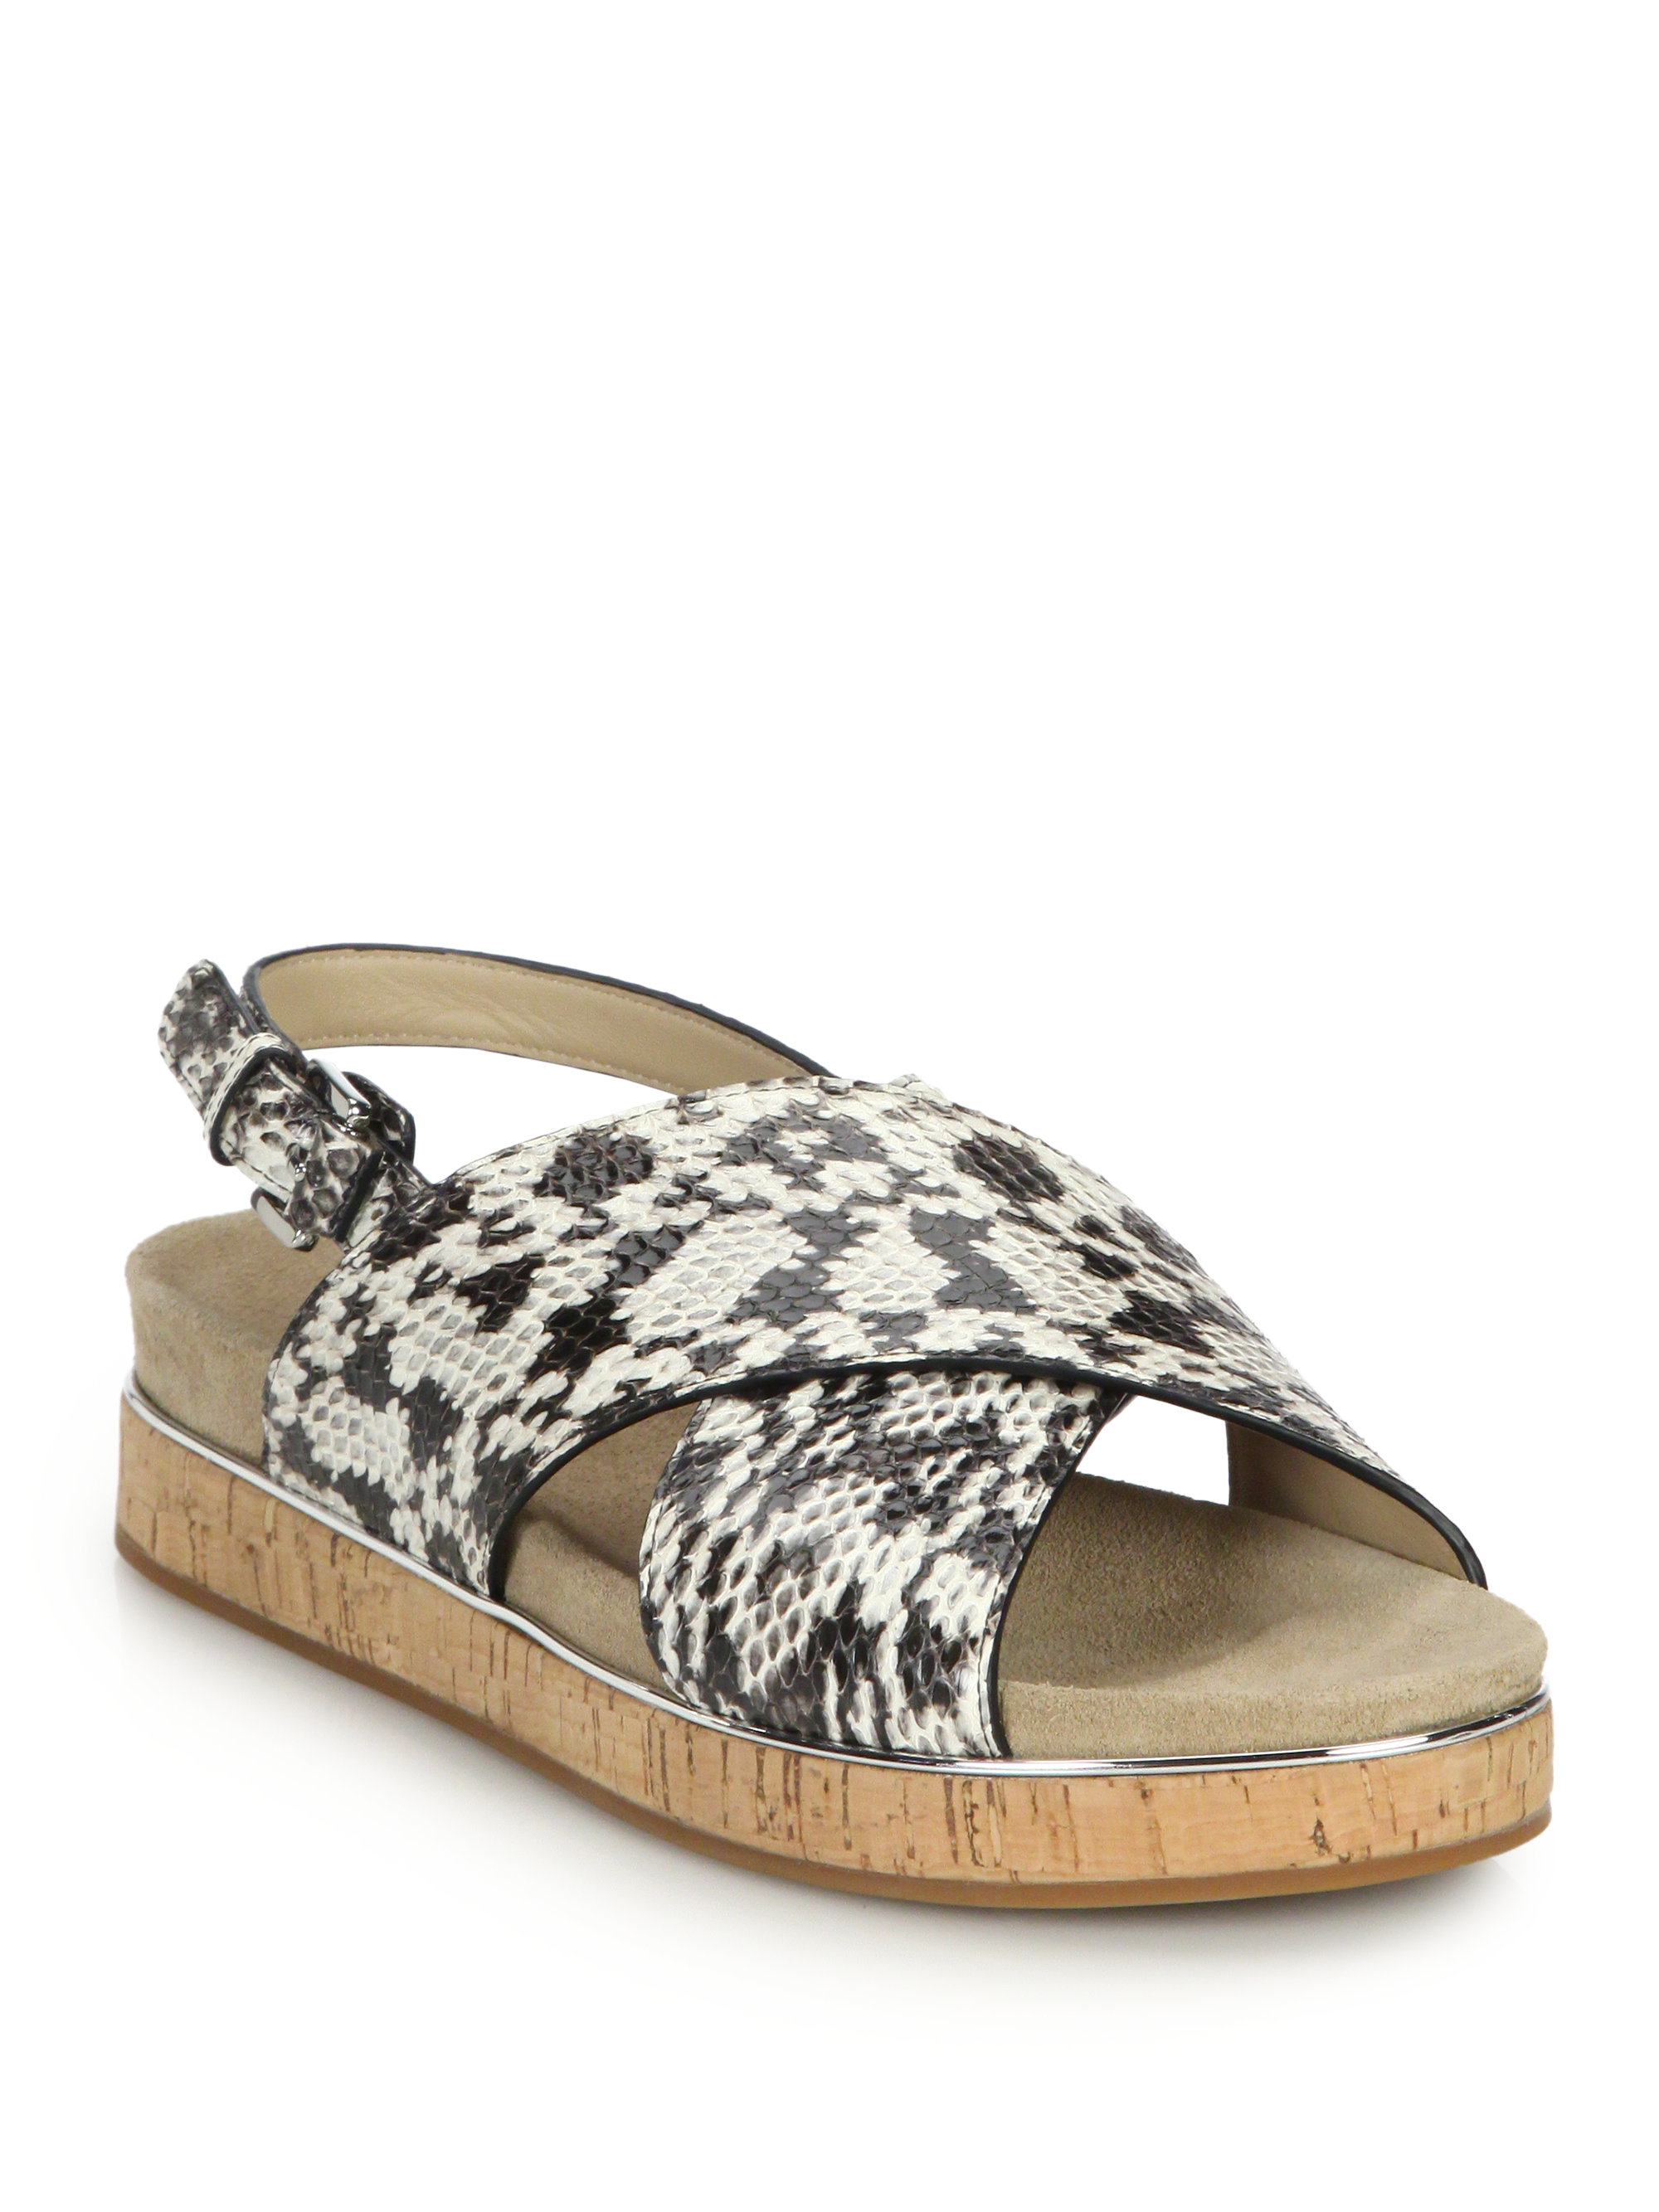 878a2349647f71 Lyst - Michael Kors Halle Flat Snakeskin Sandals in Natural